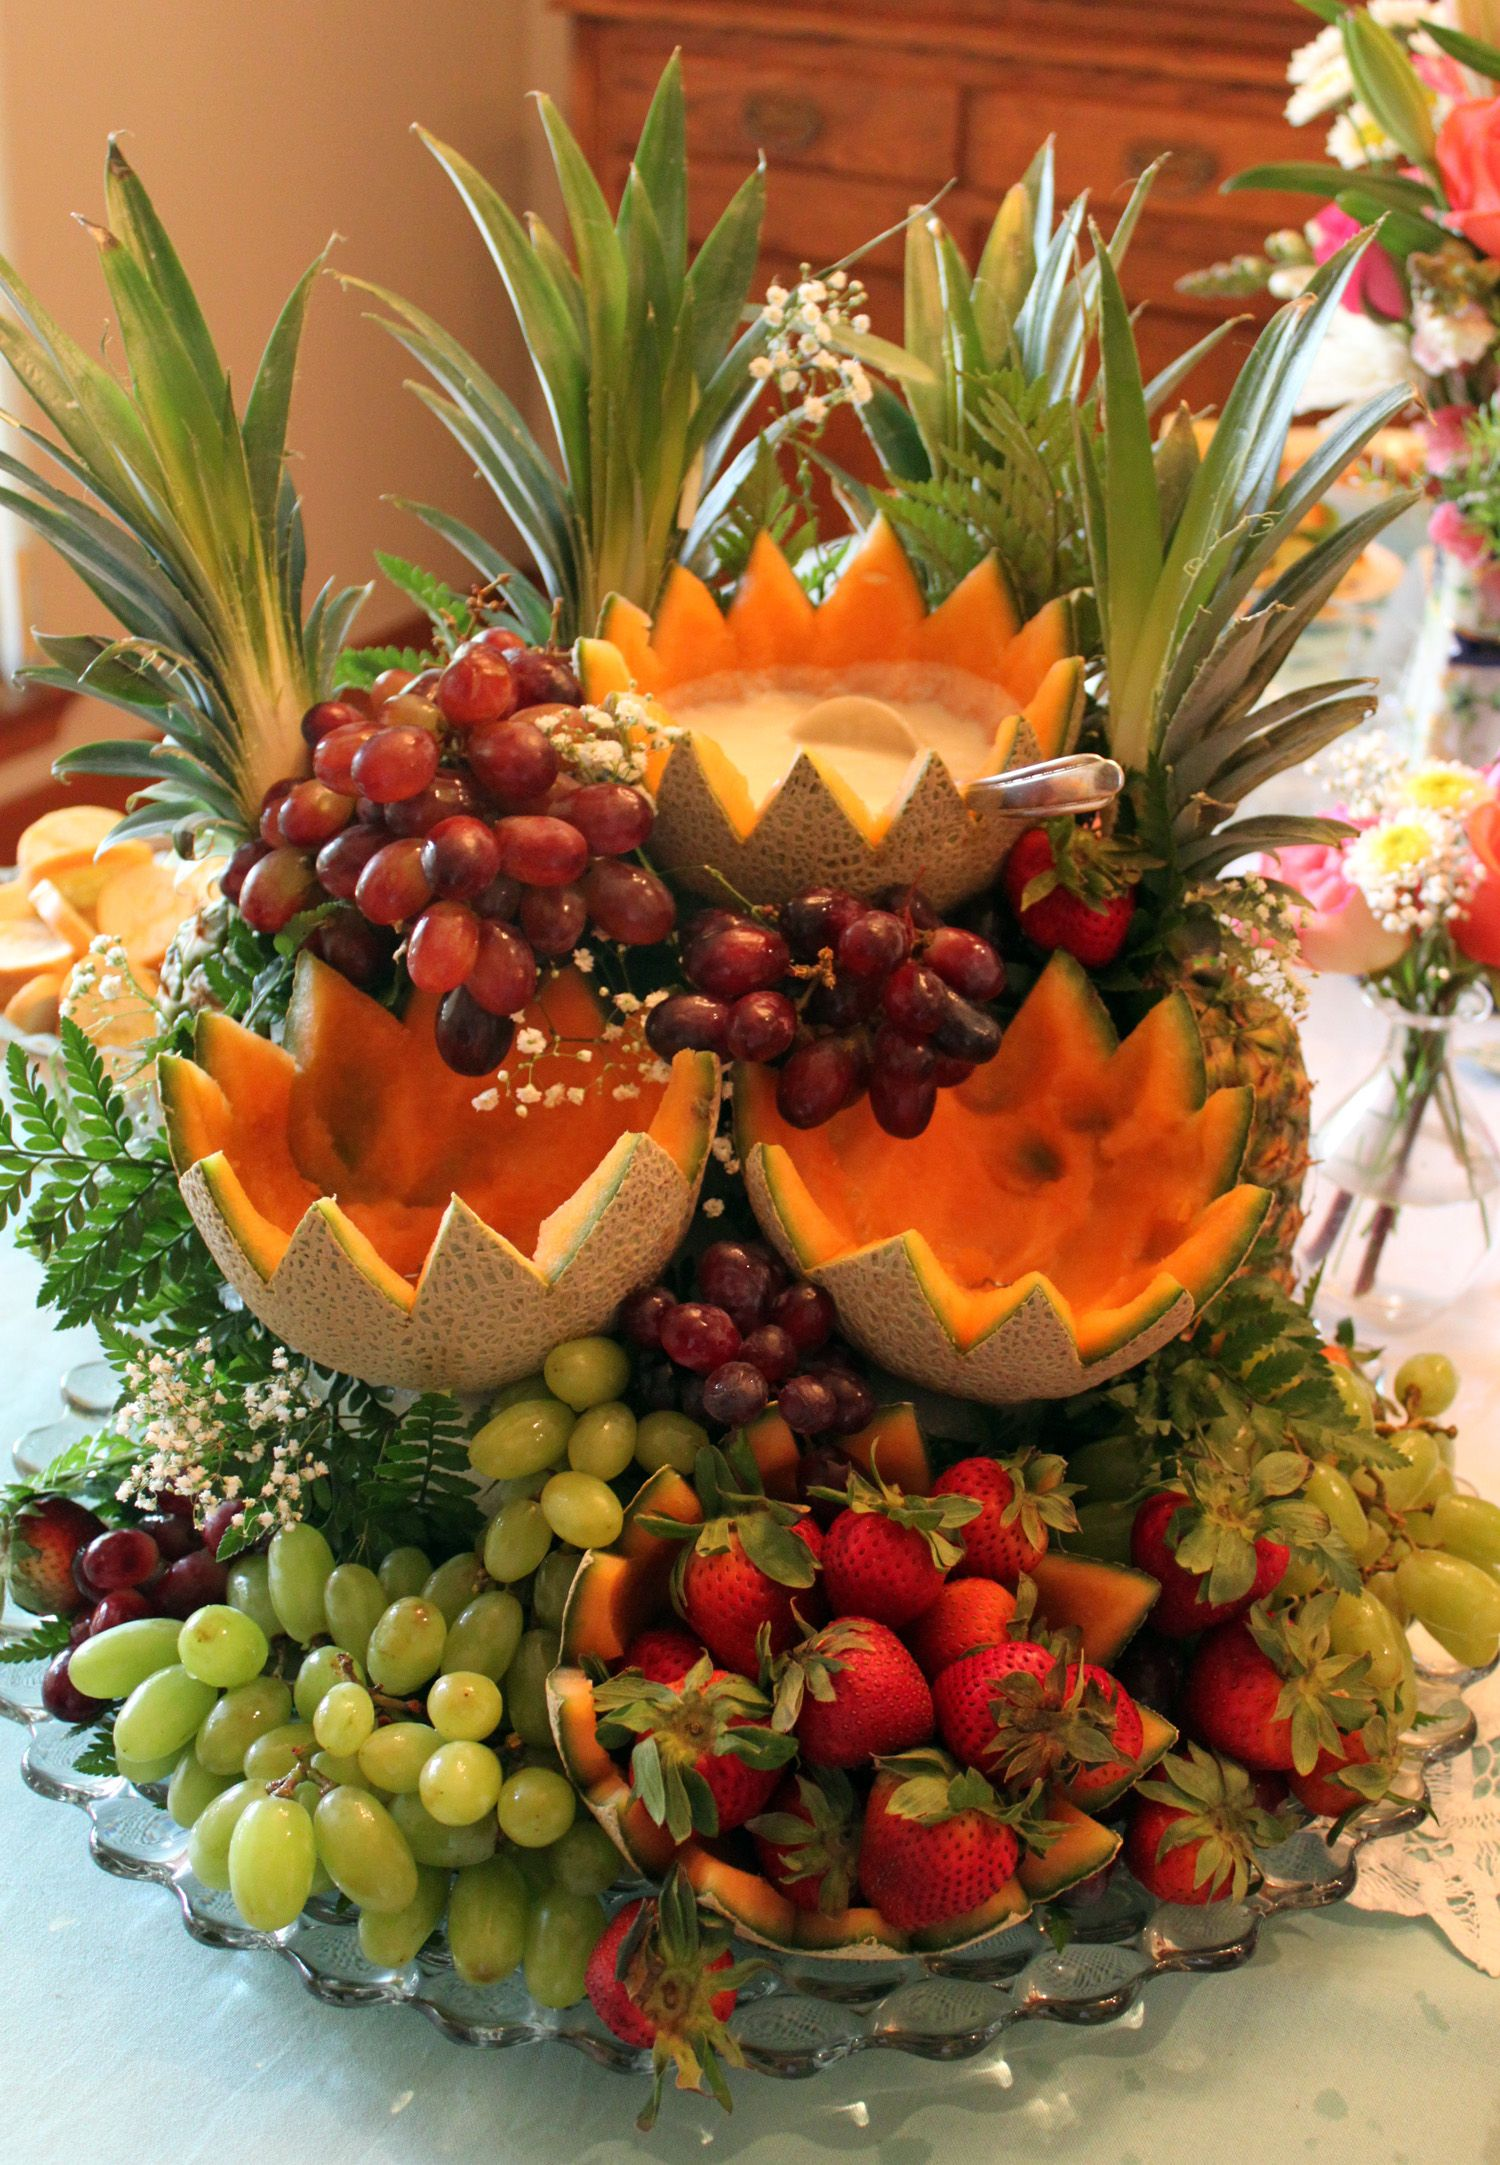 Food Display The Fruit Cascade Live Pretty Food Displays Fruit Displays Food Display